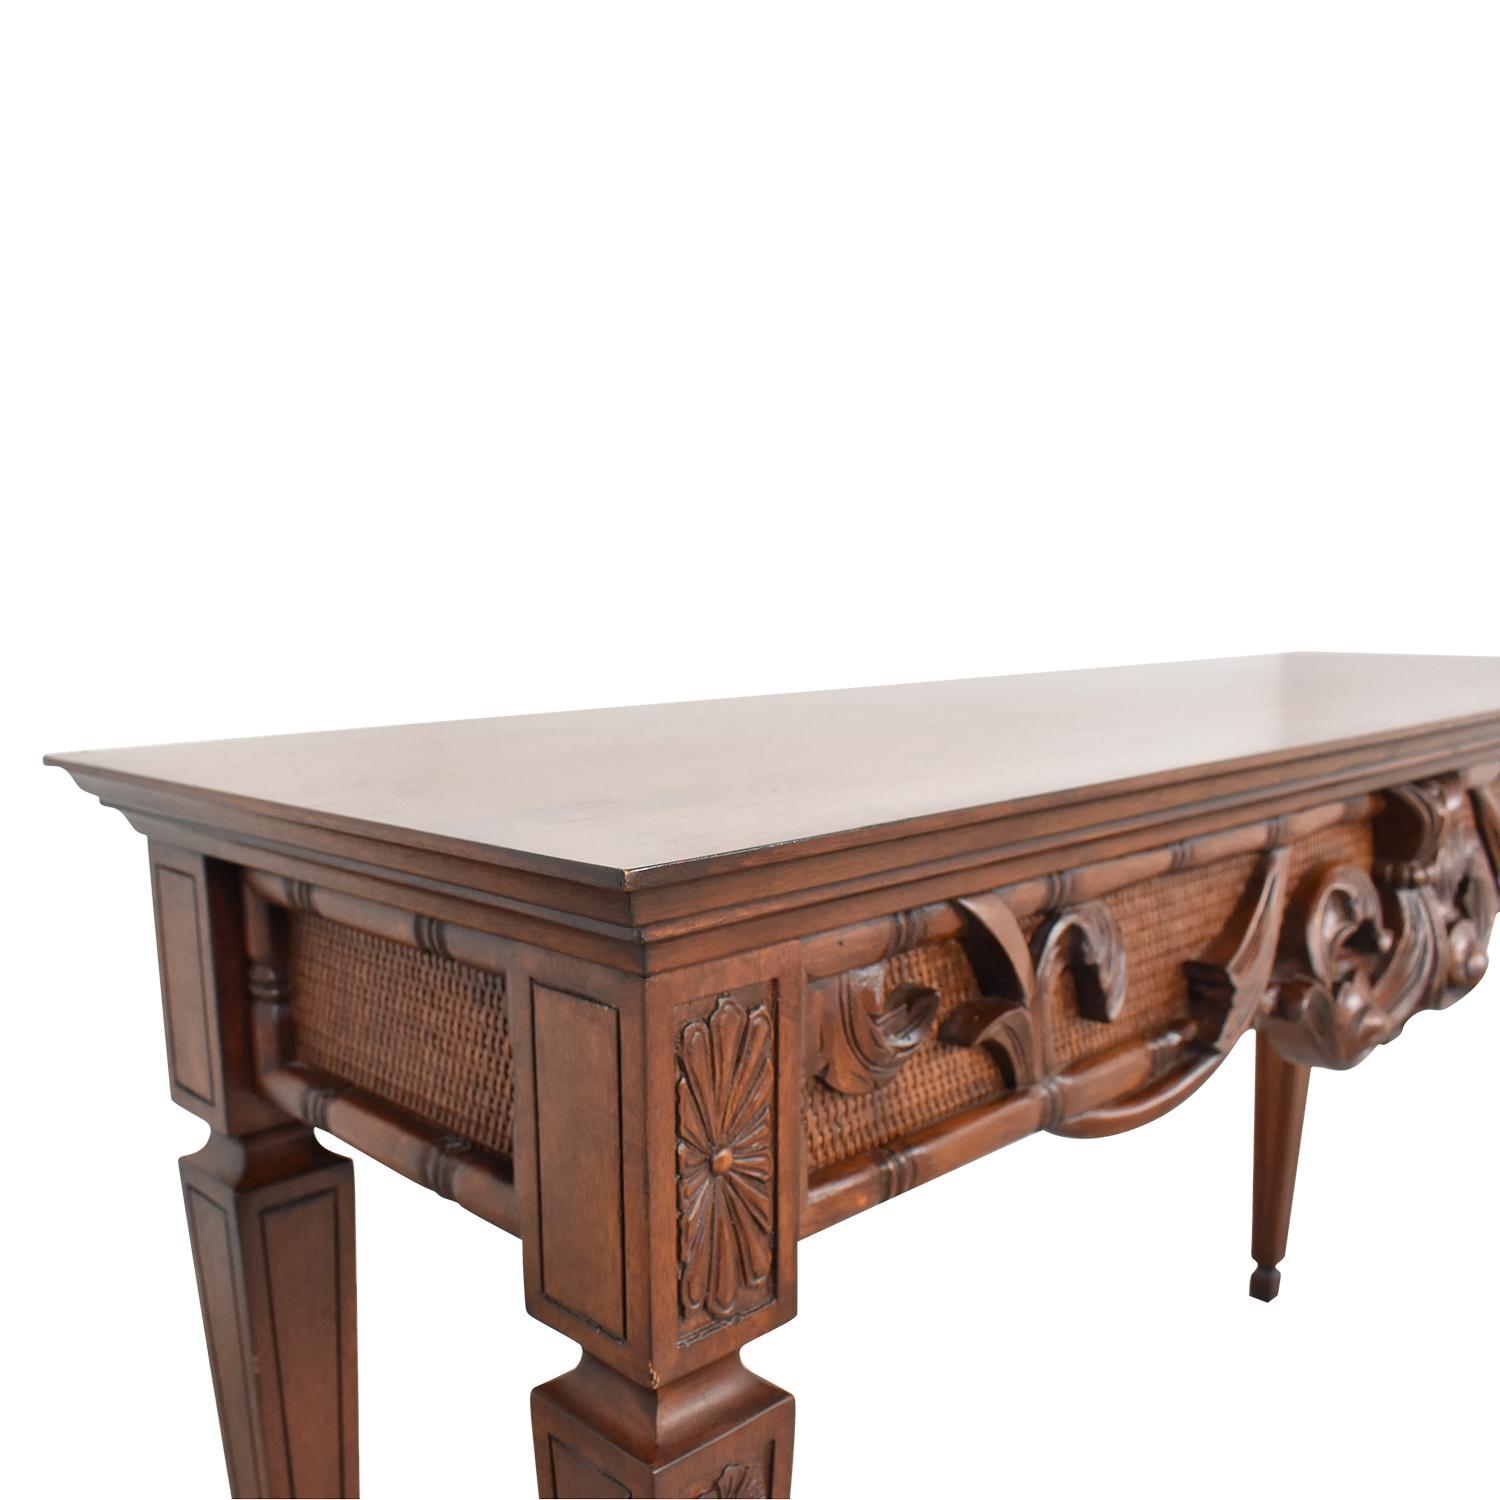 Ethan Allen Ethan Allen Carved Console Table on sale